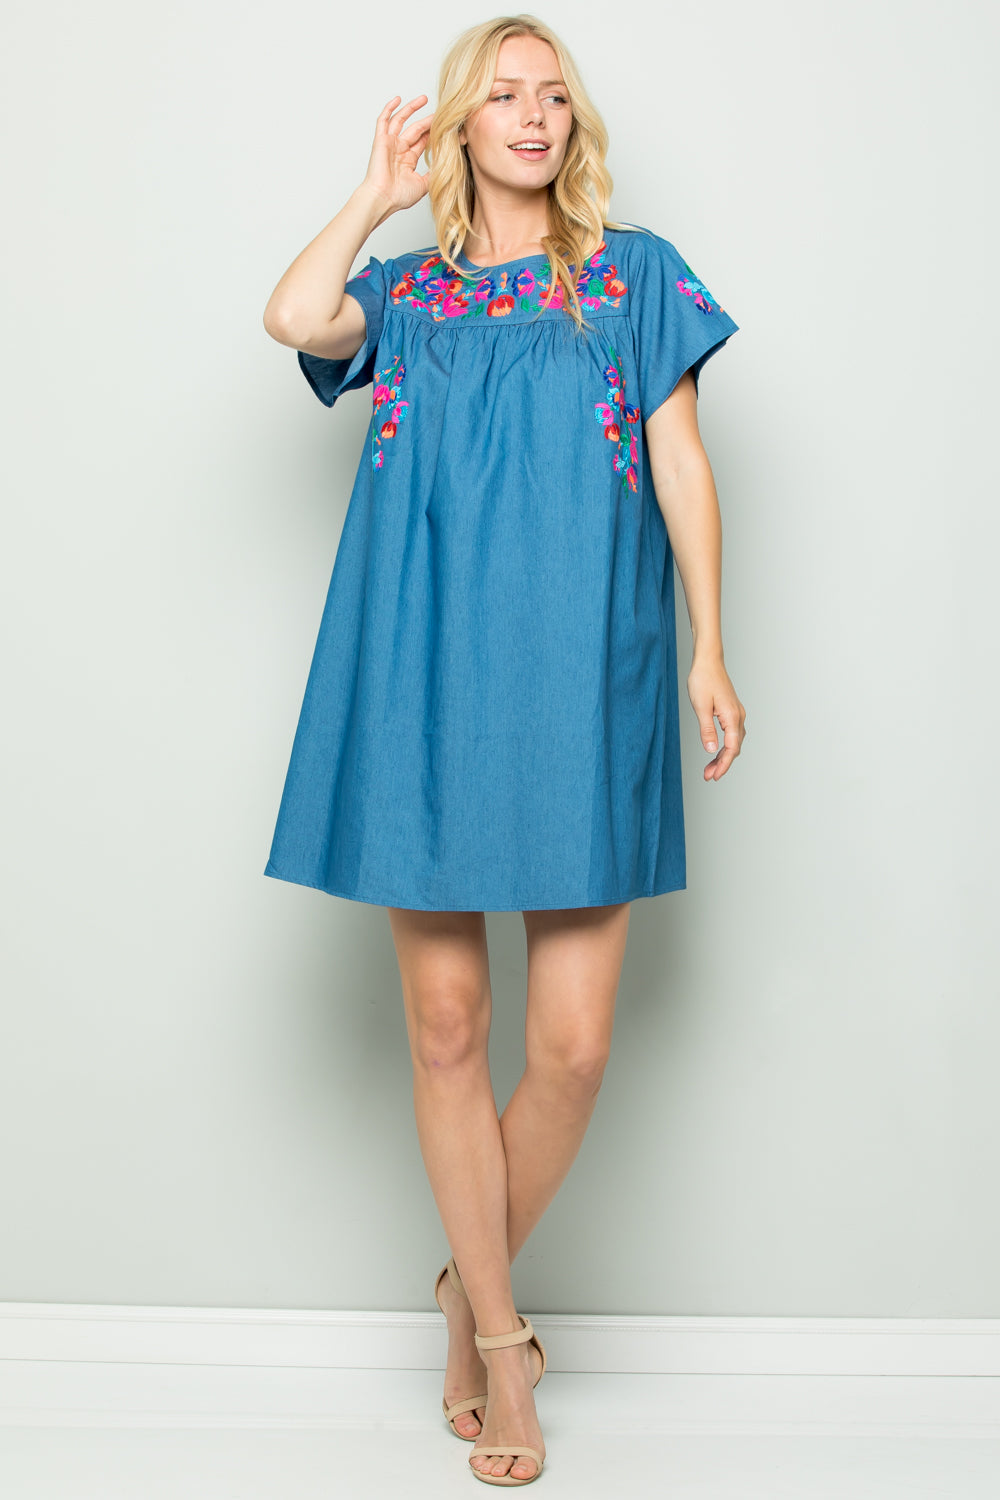 D5263 Floral Embroidery Chambray Dress